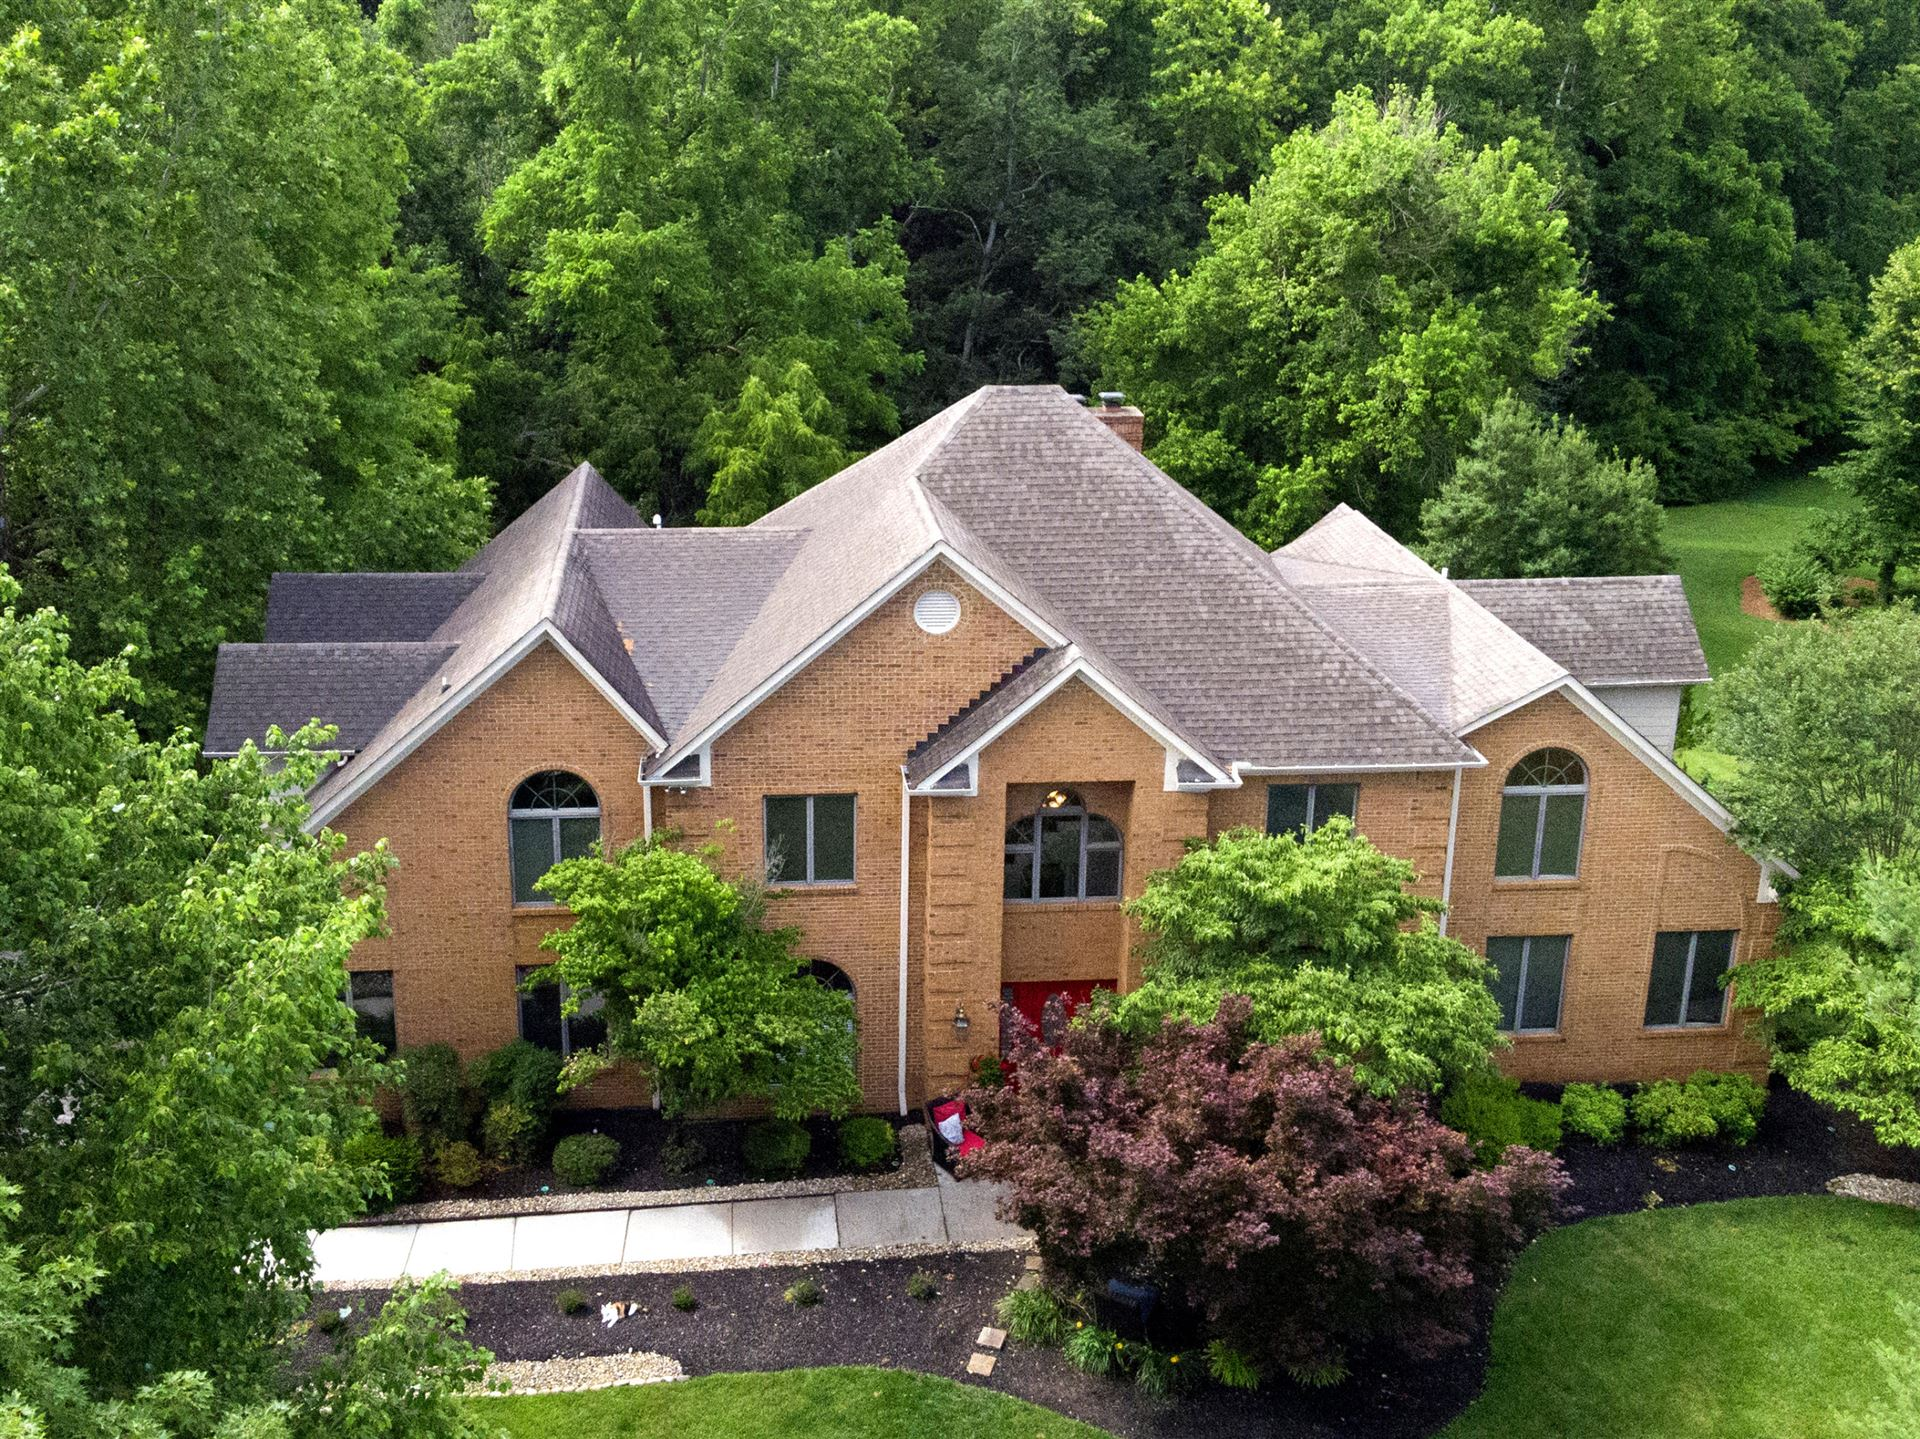 Photo of 102 Danbury Lane, Oak Ridge, TN 37830 (MLS # 1120410)